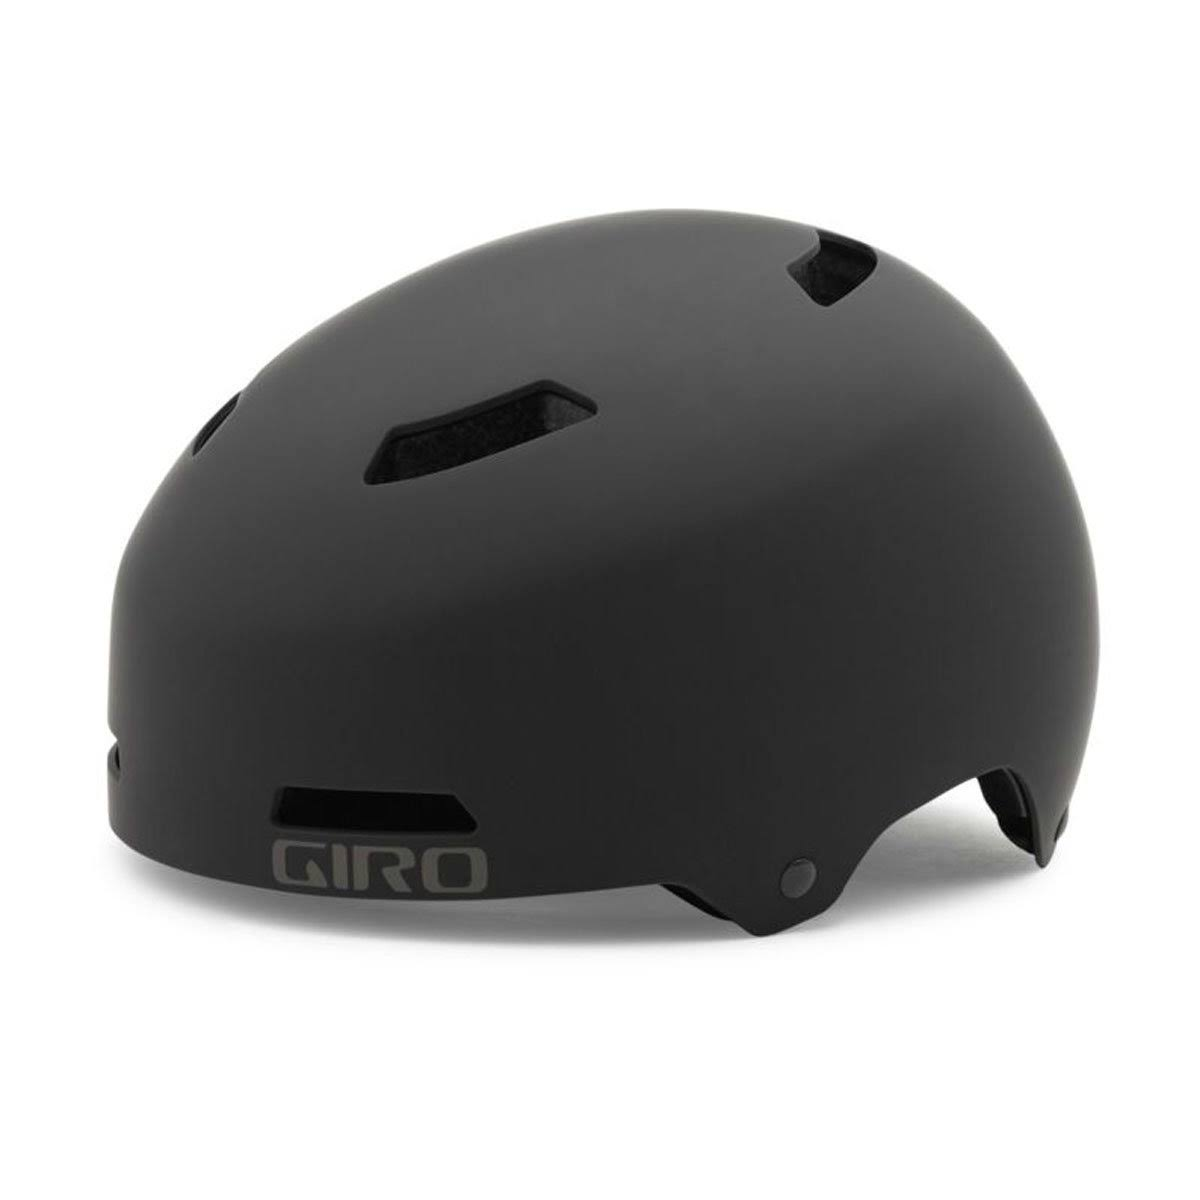 Giro Youth Dime Cycling Helmet - Matte Black, Small